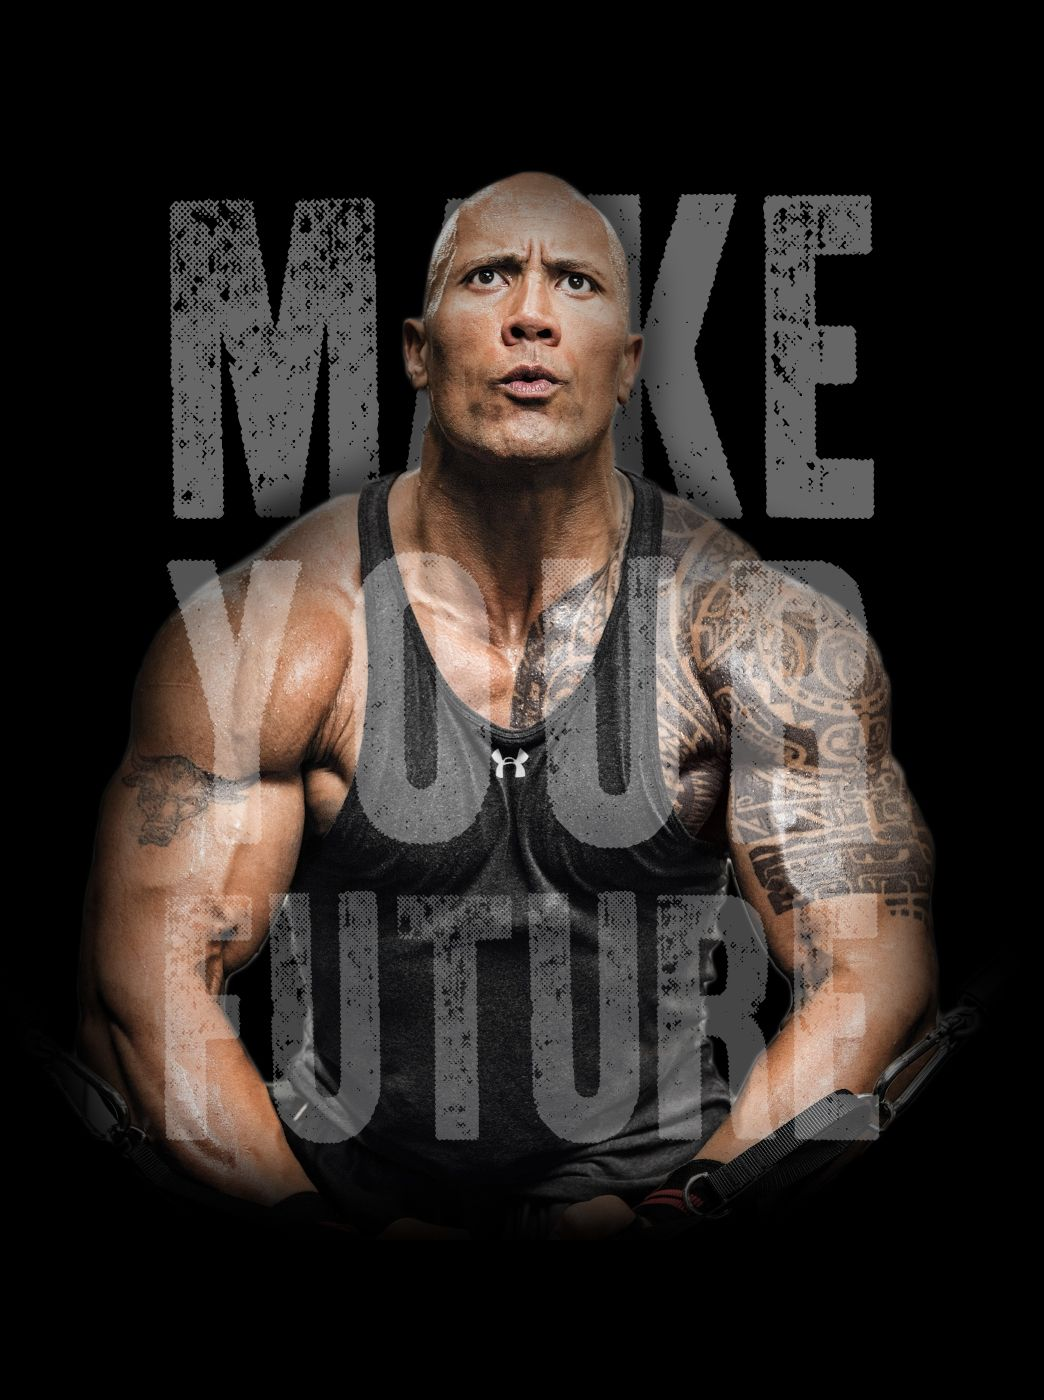 Image I Made This Dwayne Johnson Wallpaper To Motivate Me Whenever